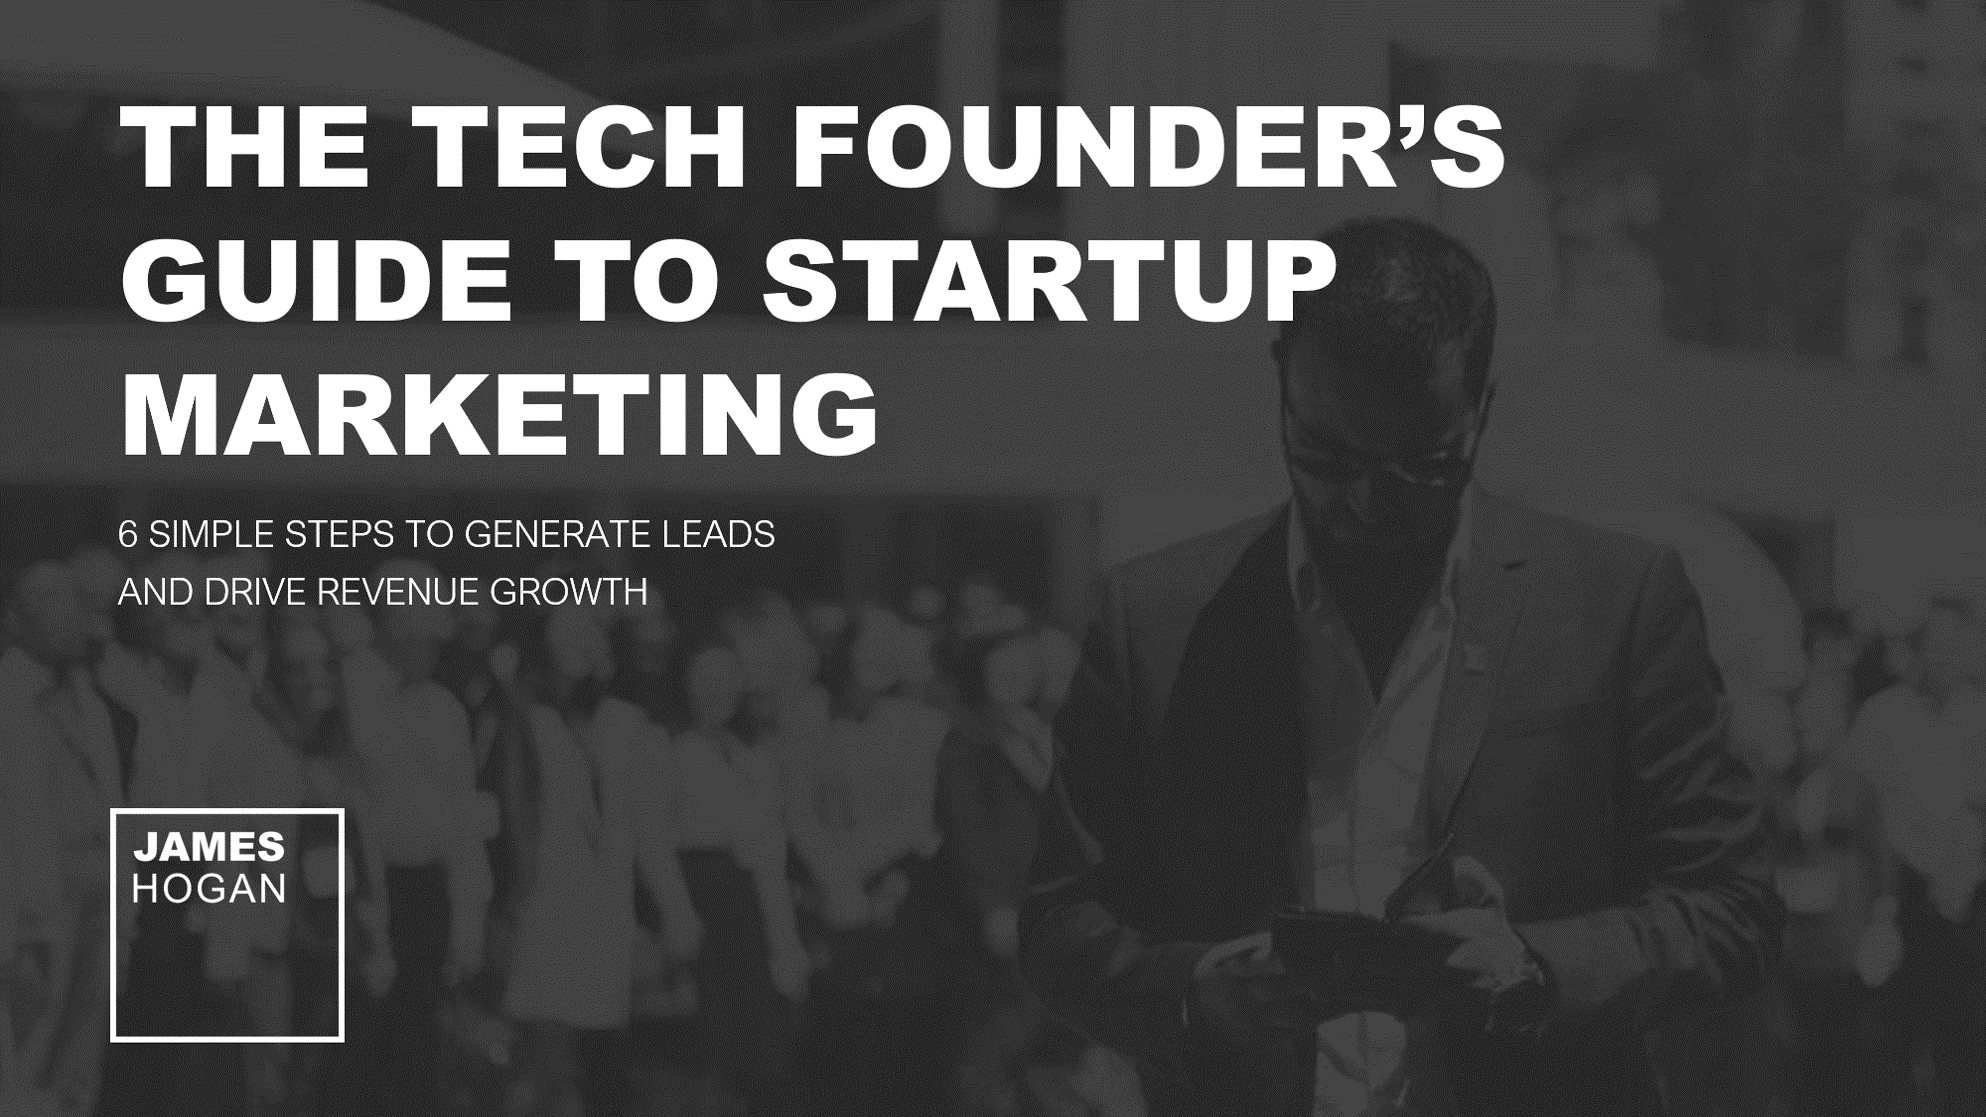 James Hogan | The tech founder's guide to startup marketing